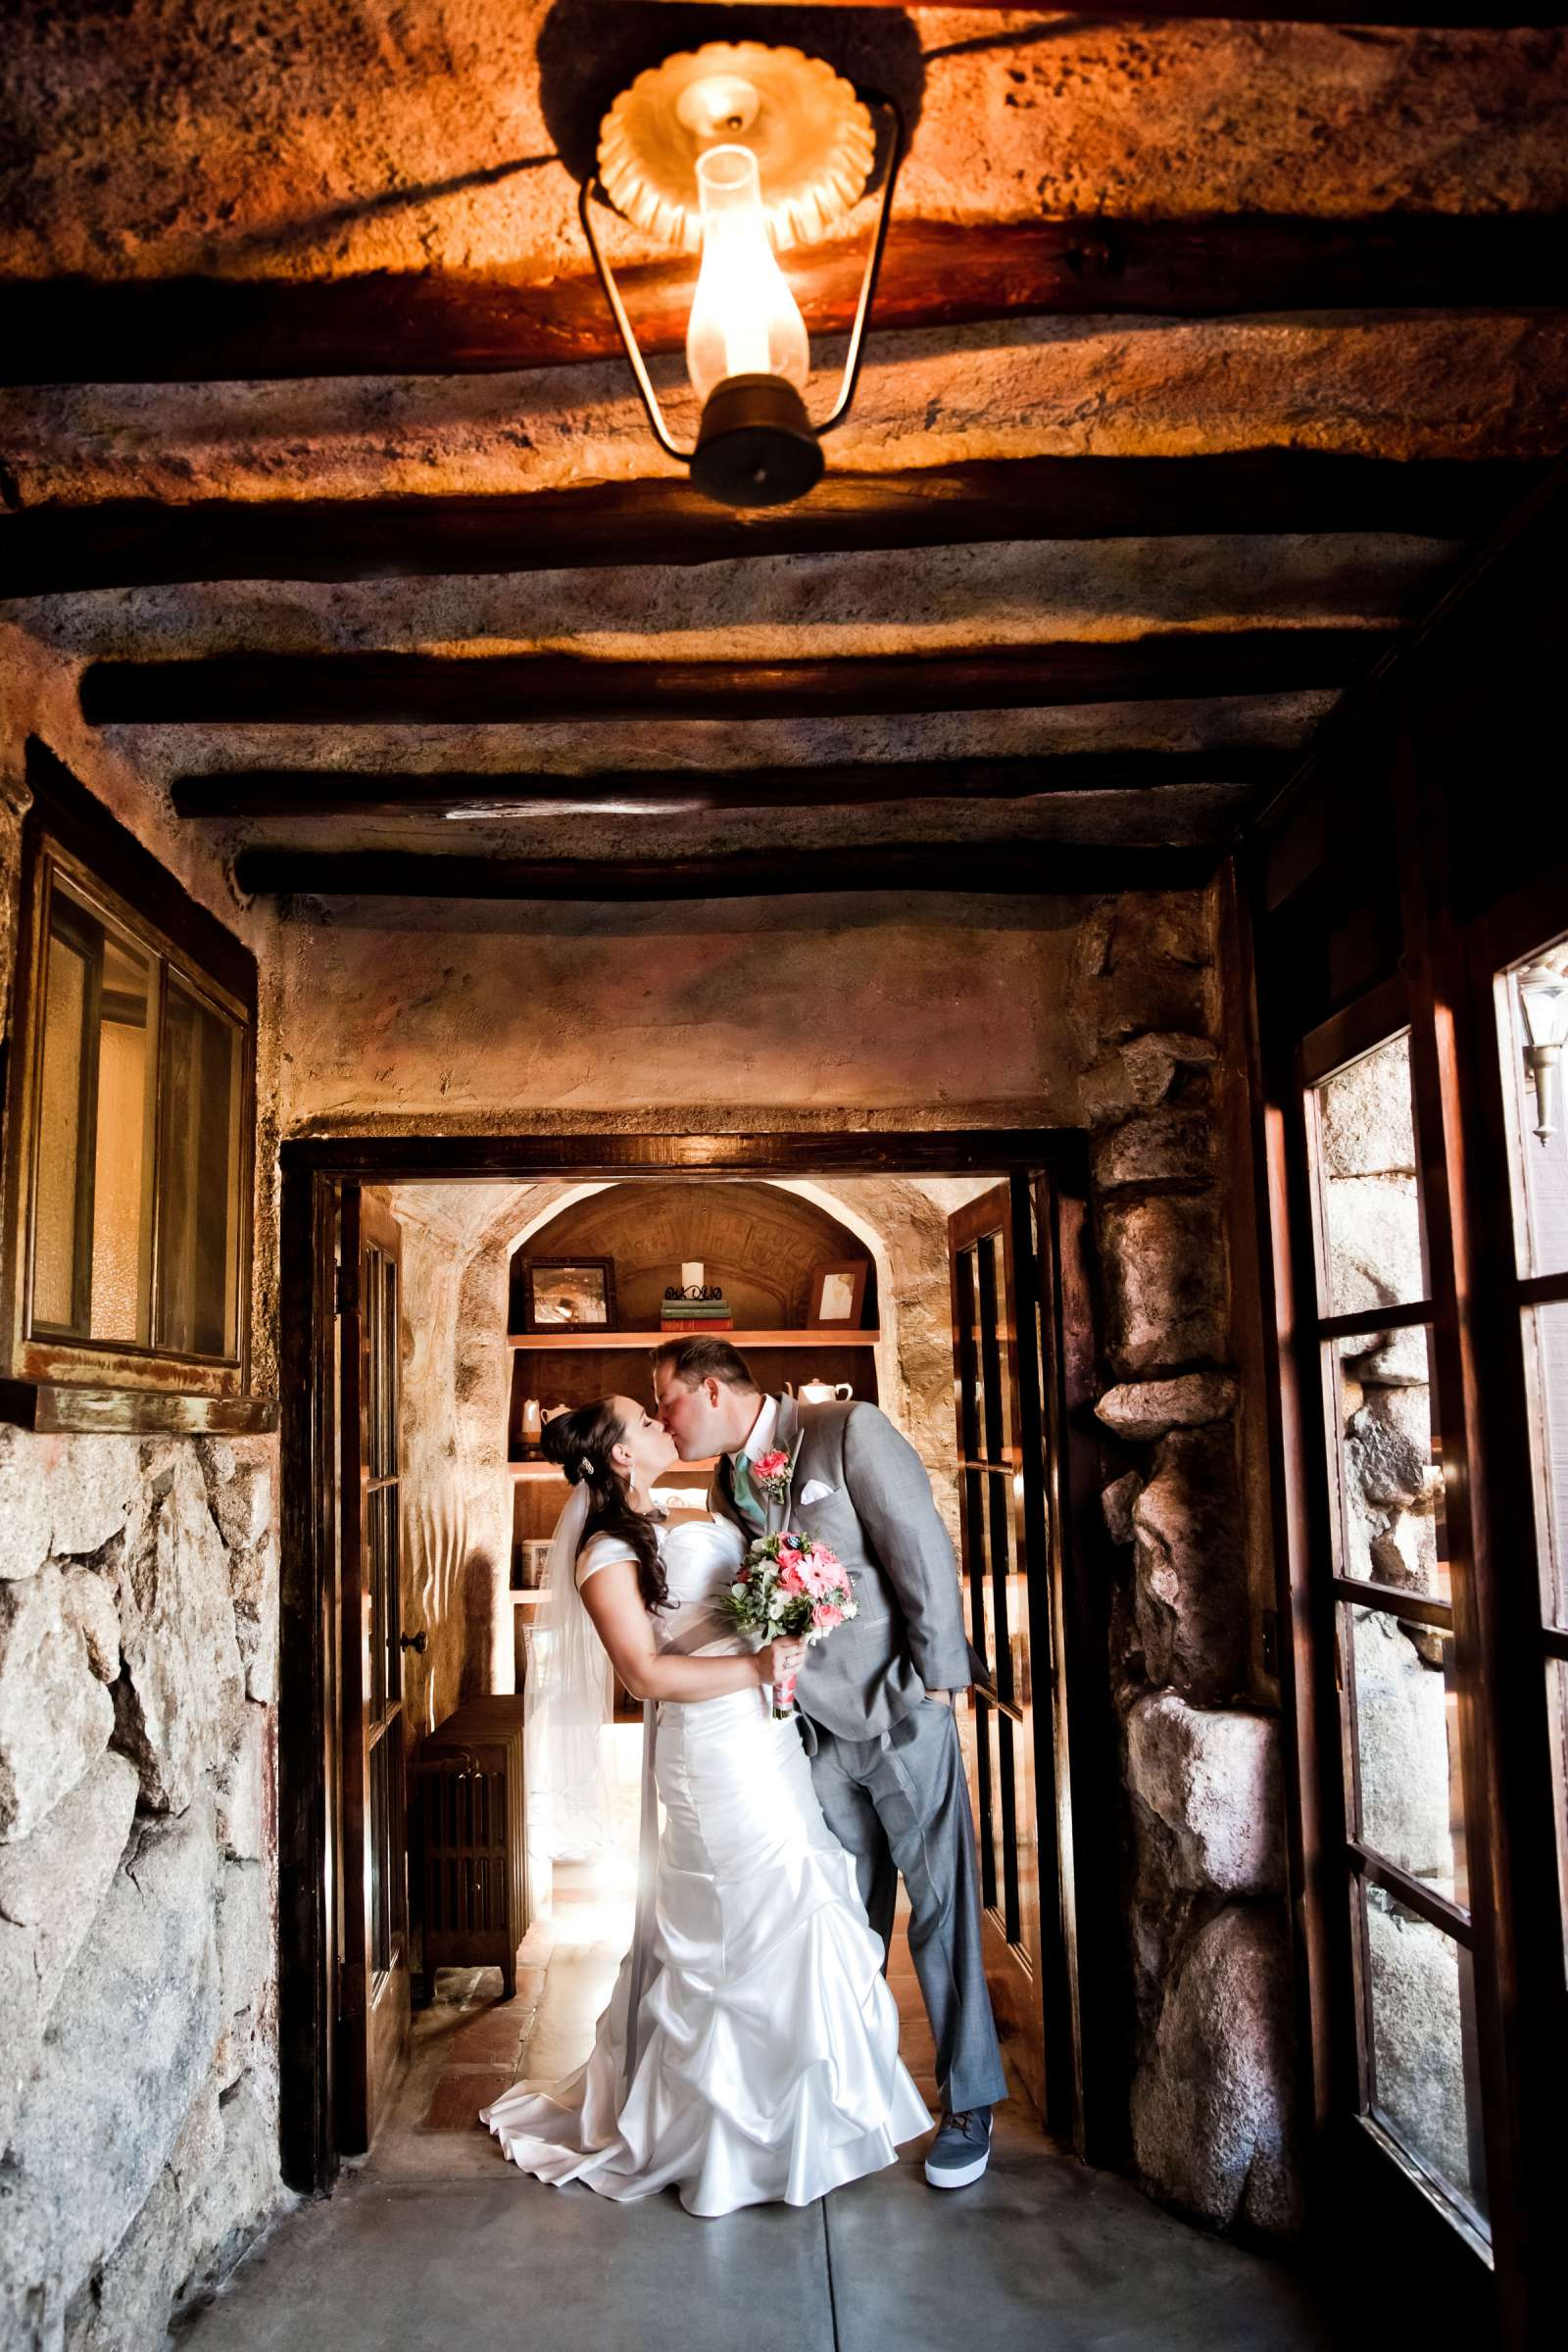 Mt Woodson Castle Wedding, Krista and Donald Wedding Photo #344686 by True Photography